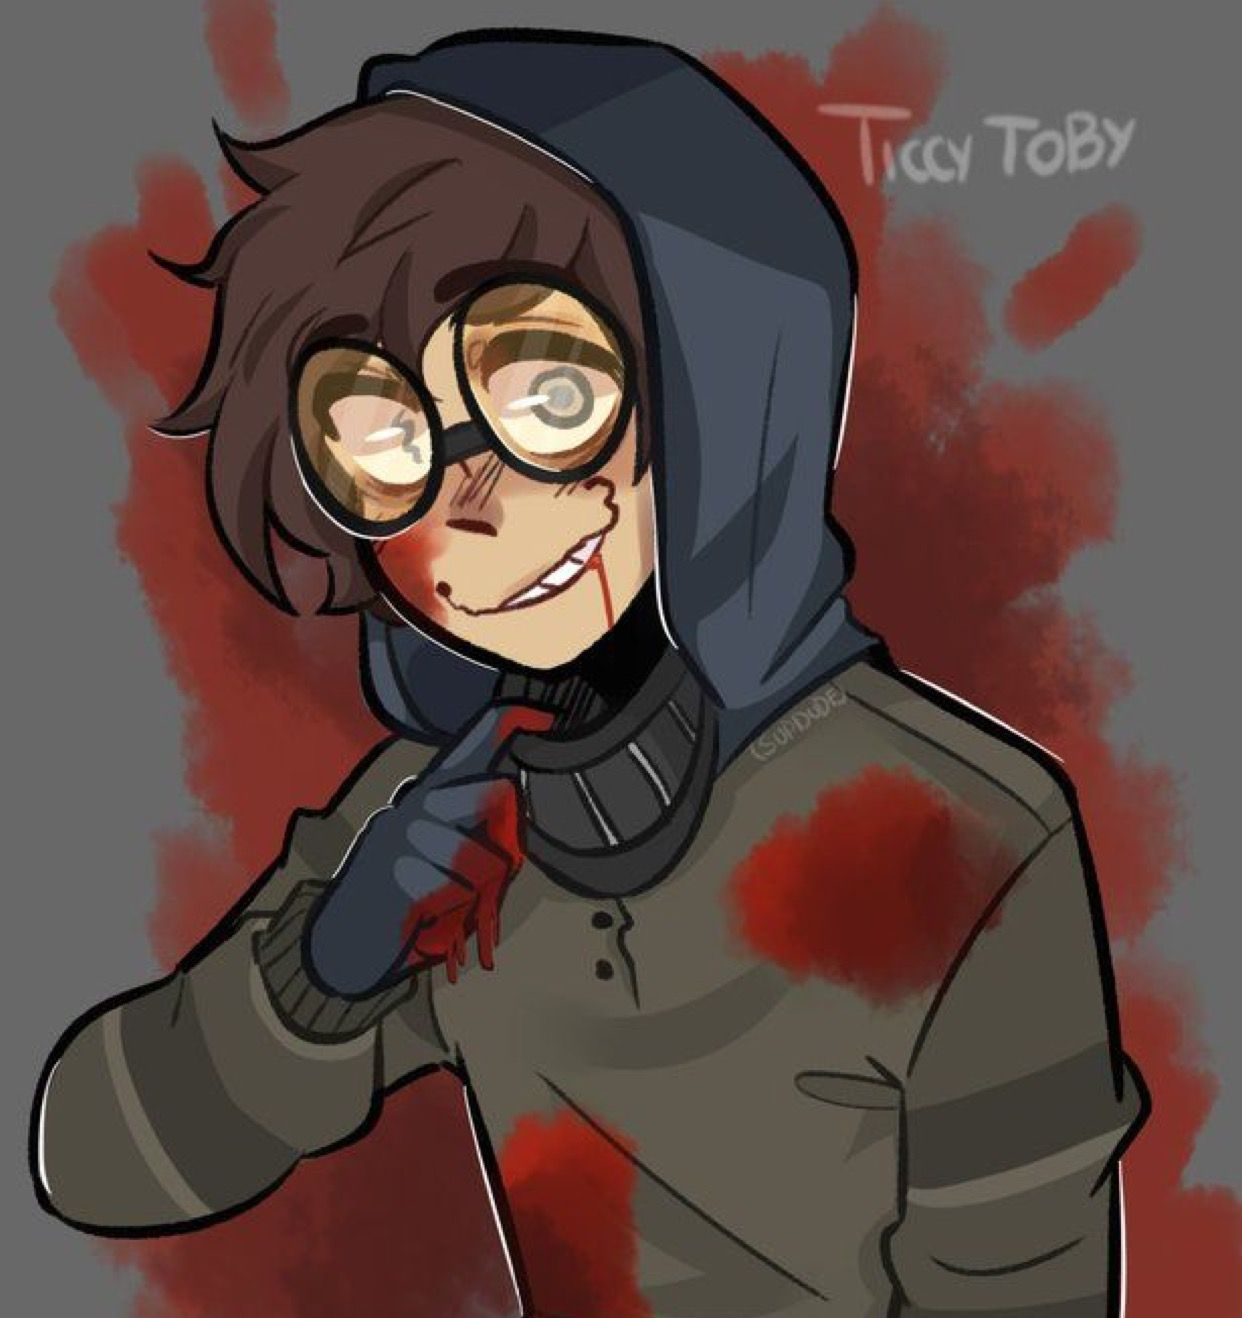 Pin by Lost_My_Mind on Reference Creepypasta cute